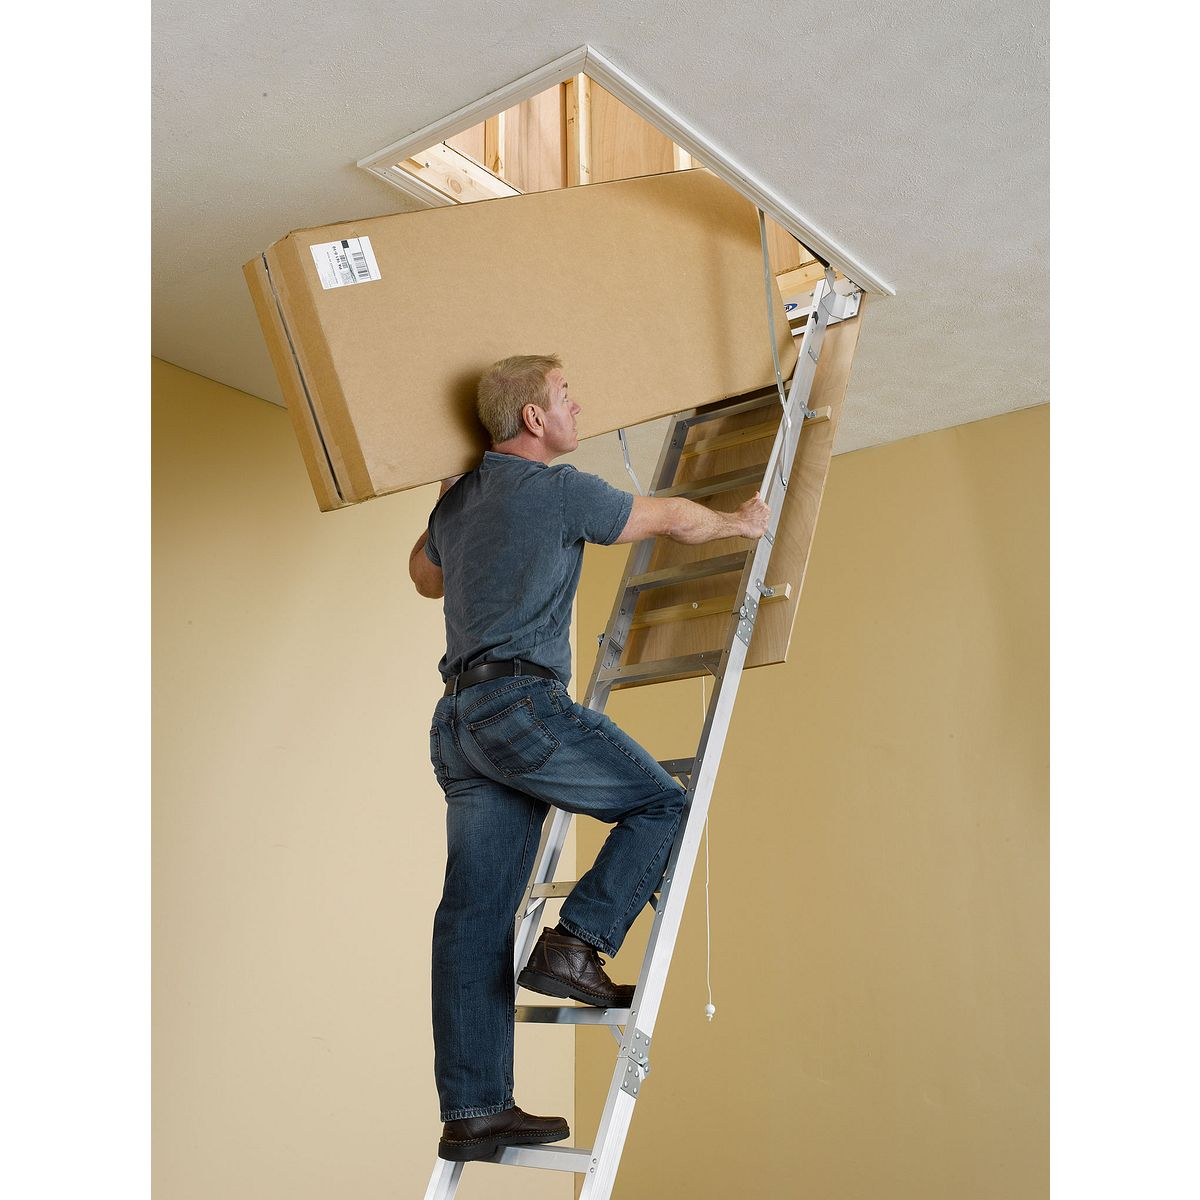 Ah2512 attic ladders werner us - Escaleras de techo plegables ...